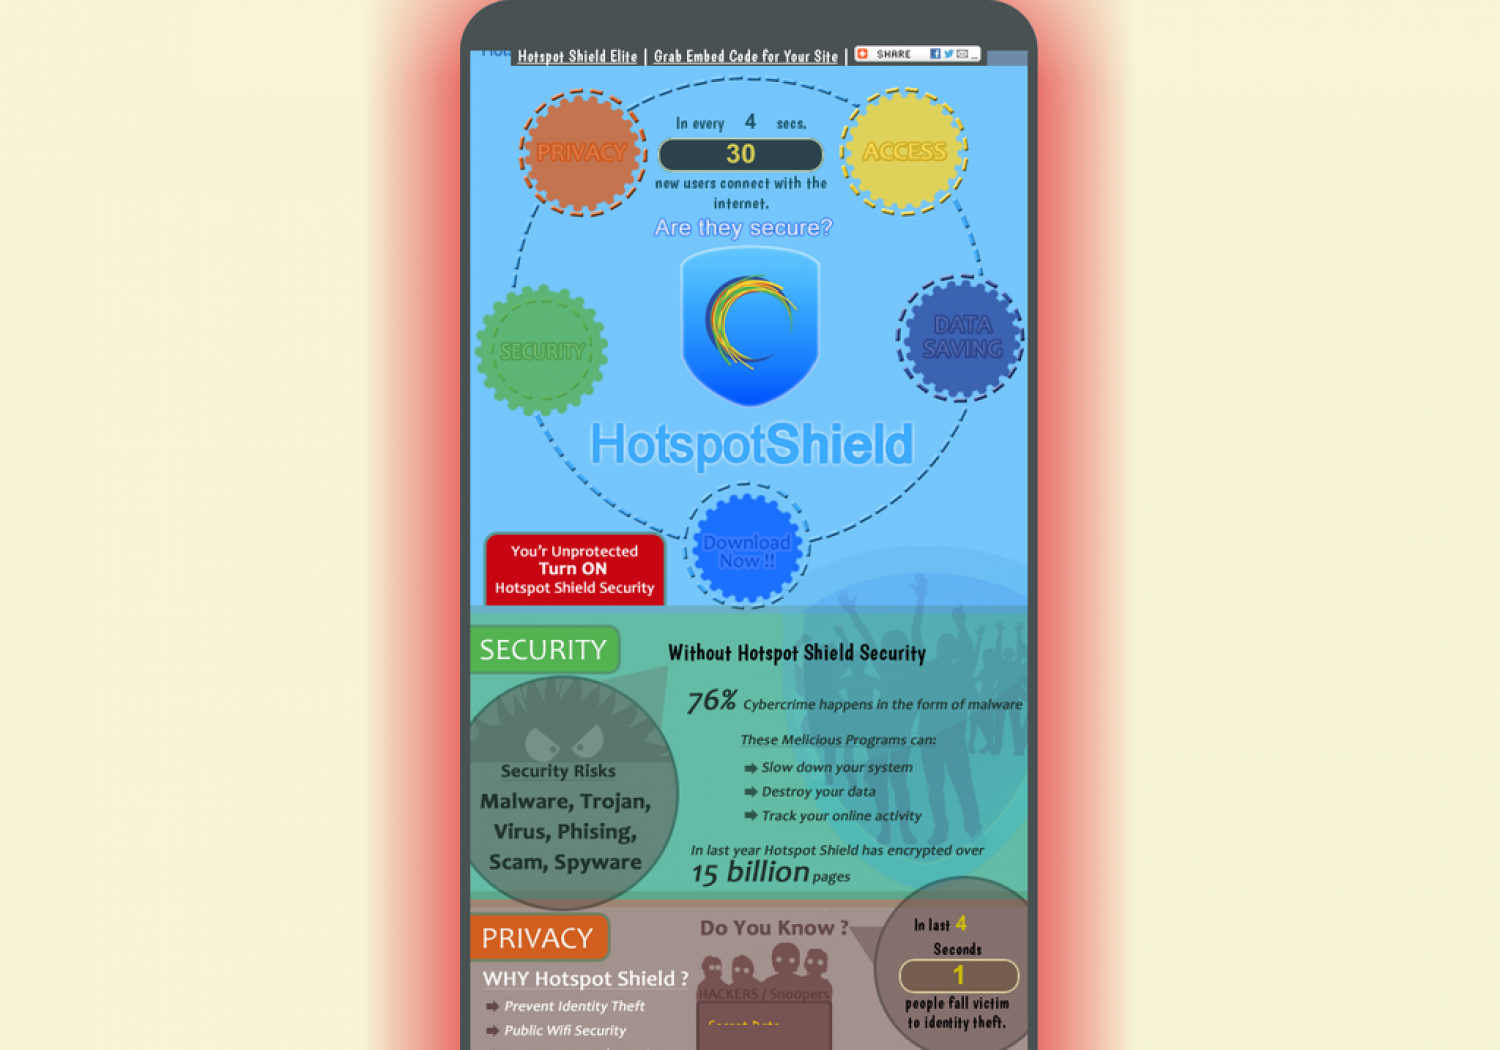 HTML5 Infographic About Internet Privacy & Security by Hotspot Shield Elite Infographic